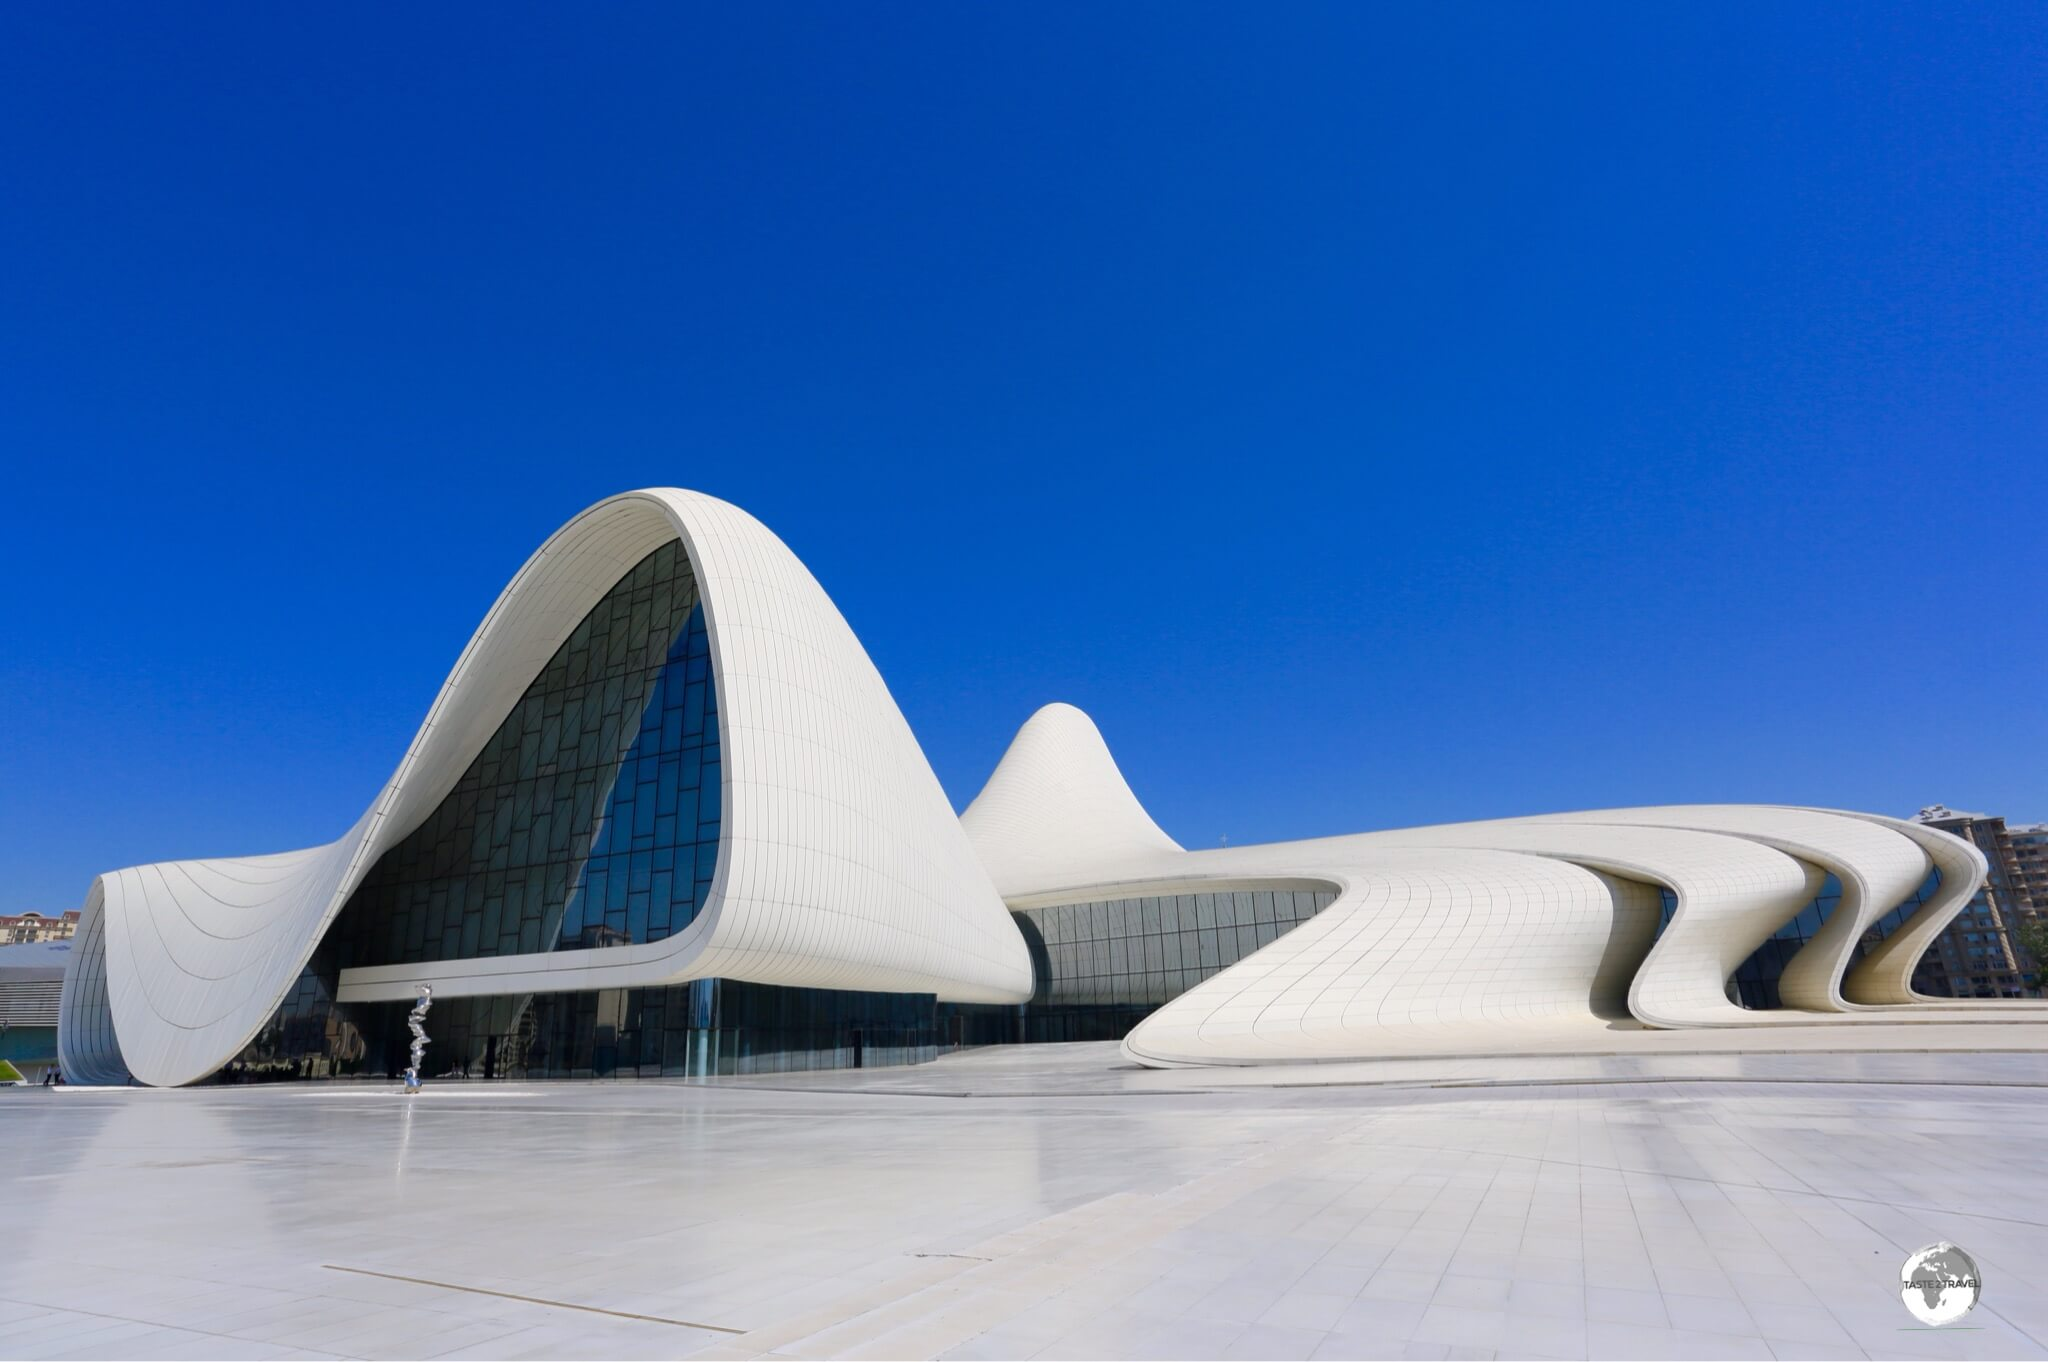 The jaw-droppingly beautiful, and totally original, Heydar Aliyev Centre was designed by Zaha Hadid.